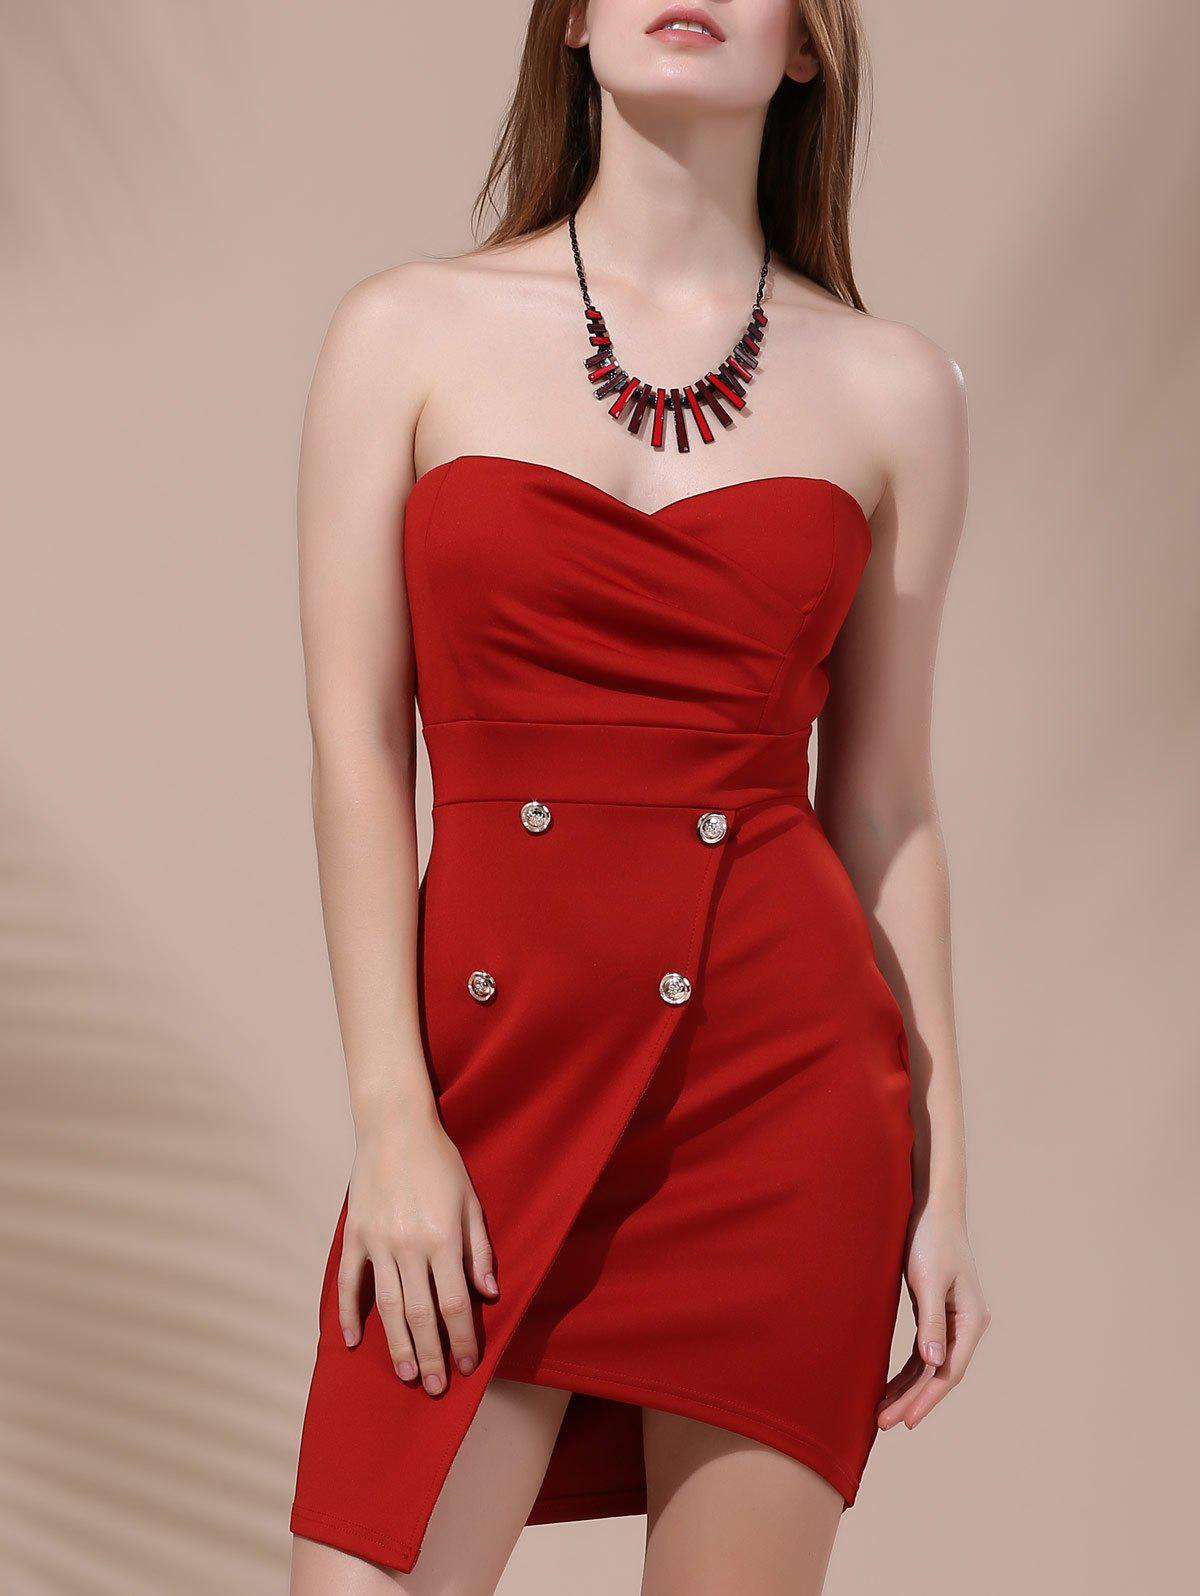 Chic Strapless Pure Color Asymmetrical Dress For Women - DEEP RED S